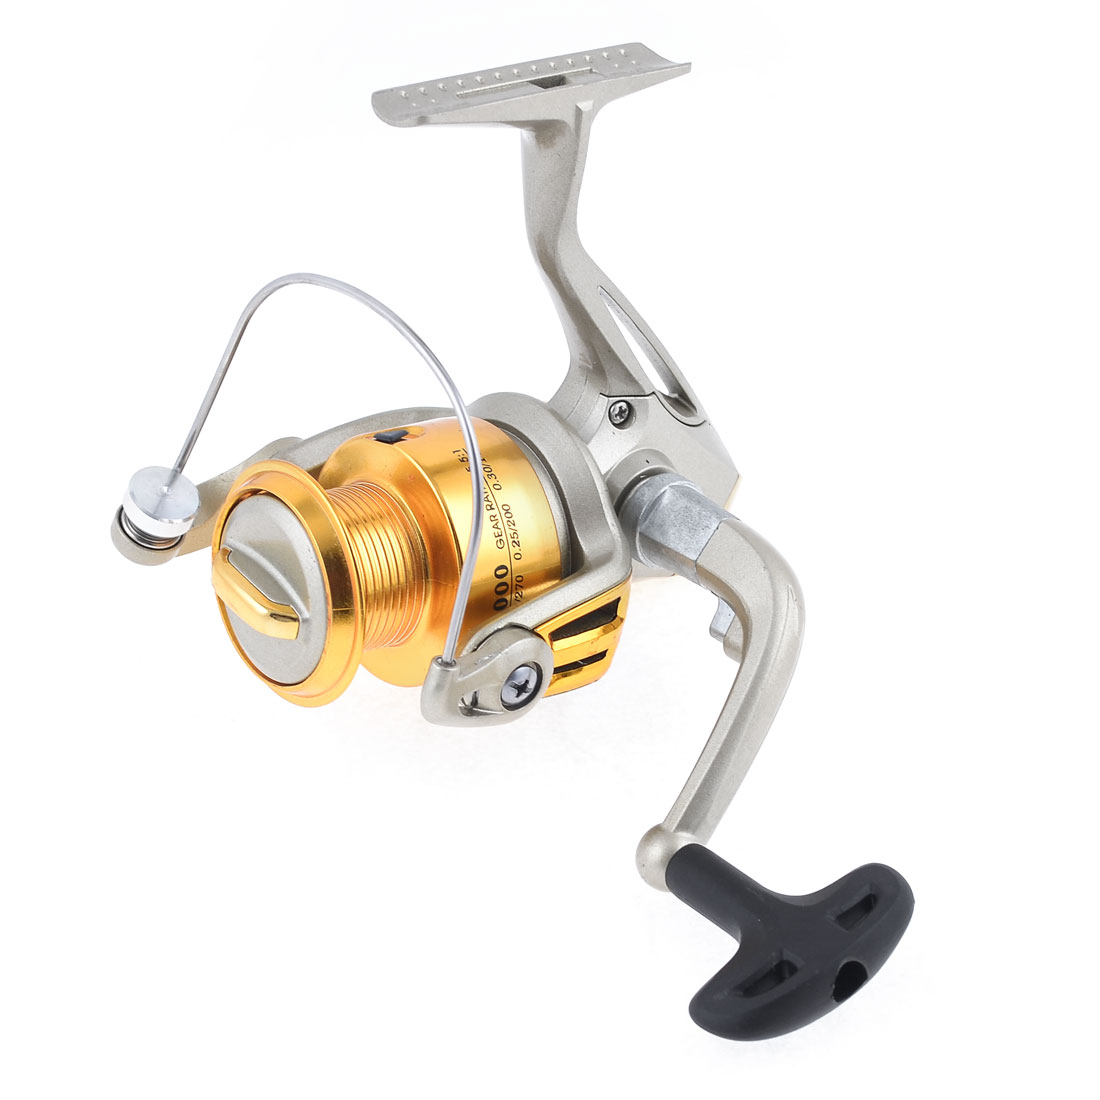 5.5:1 Gear Ratio 5 Ball Bearings Champagne Metal Fishing Spinning Reel